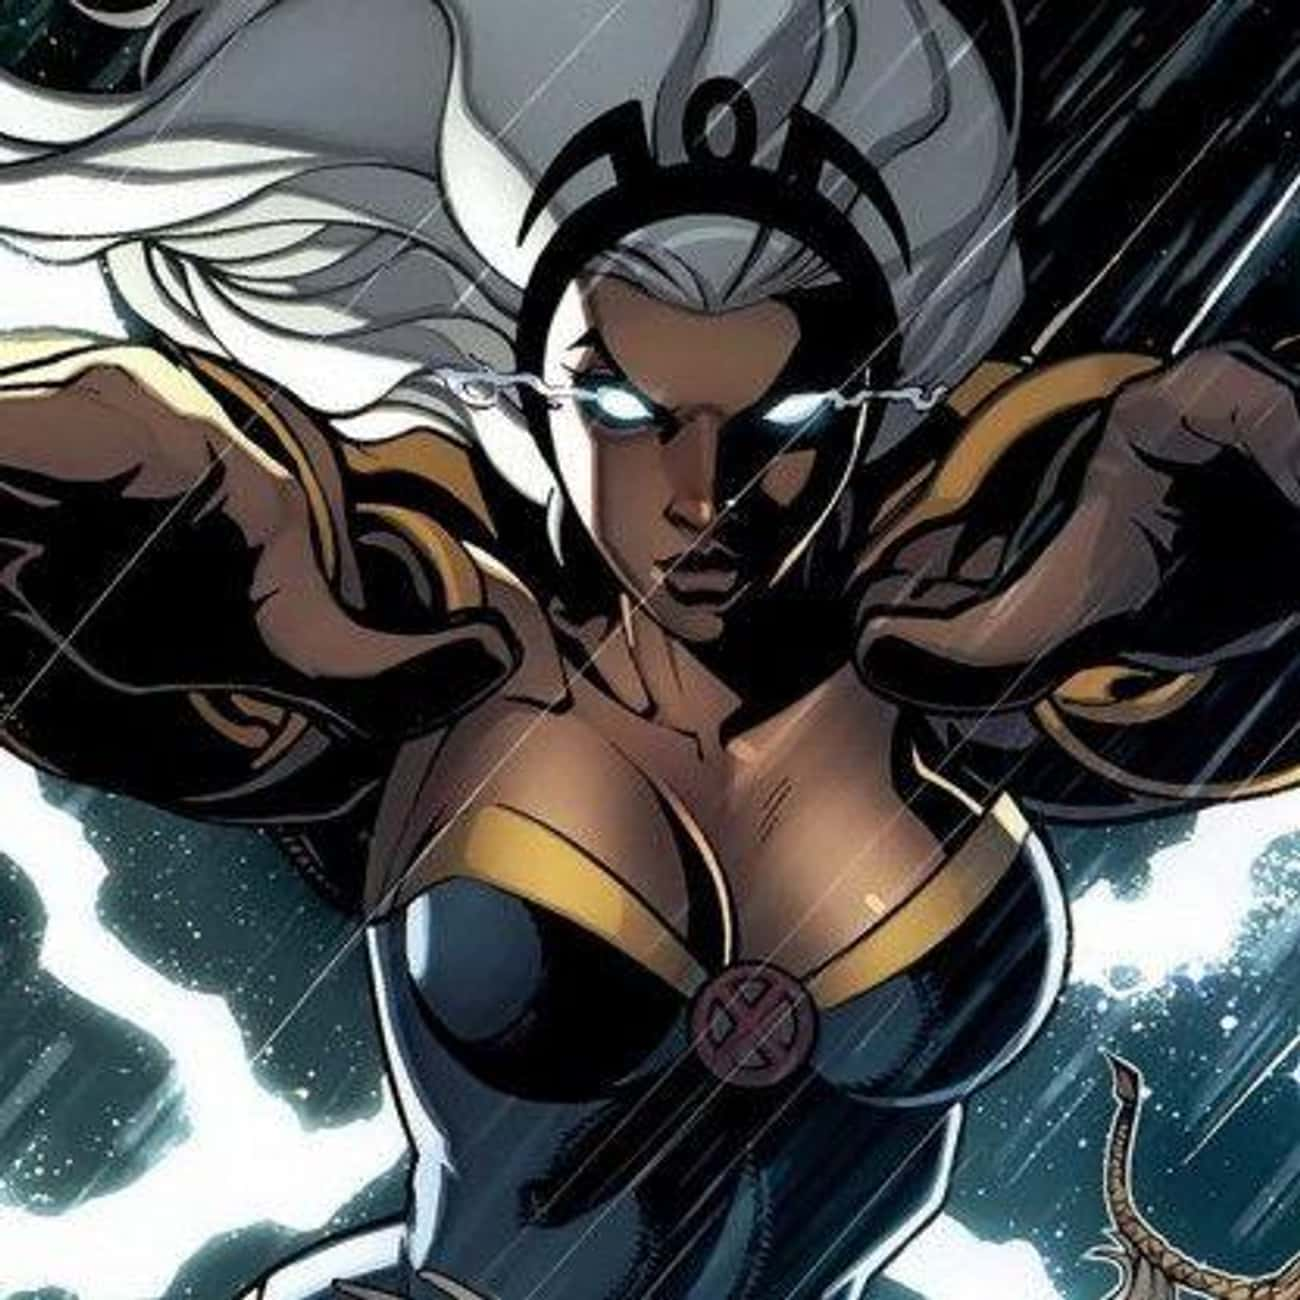 Storm is listed (or ranked) 1 on the list Greatest Black Female Superheroes